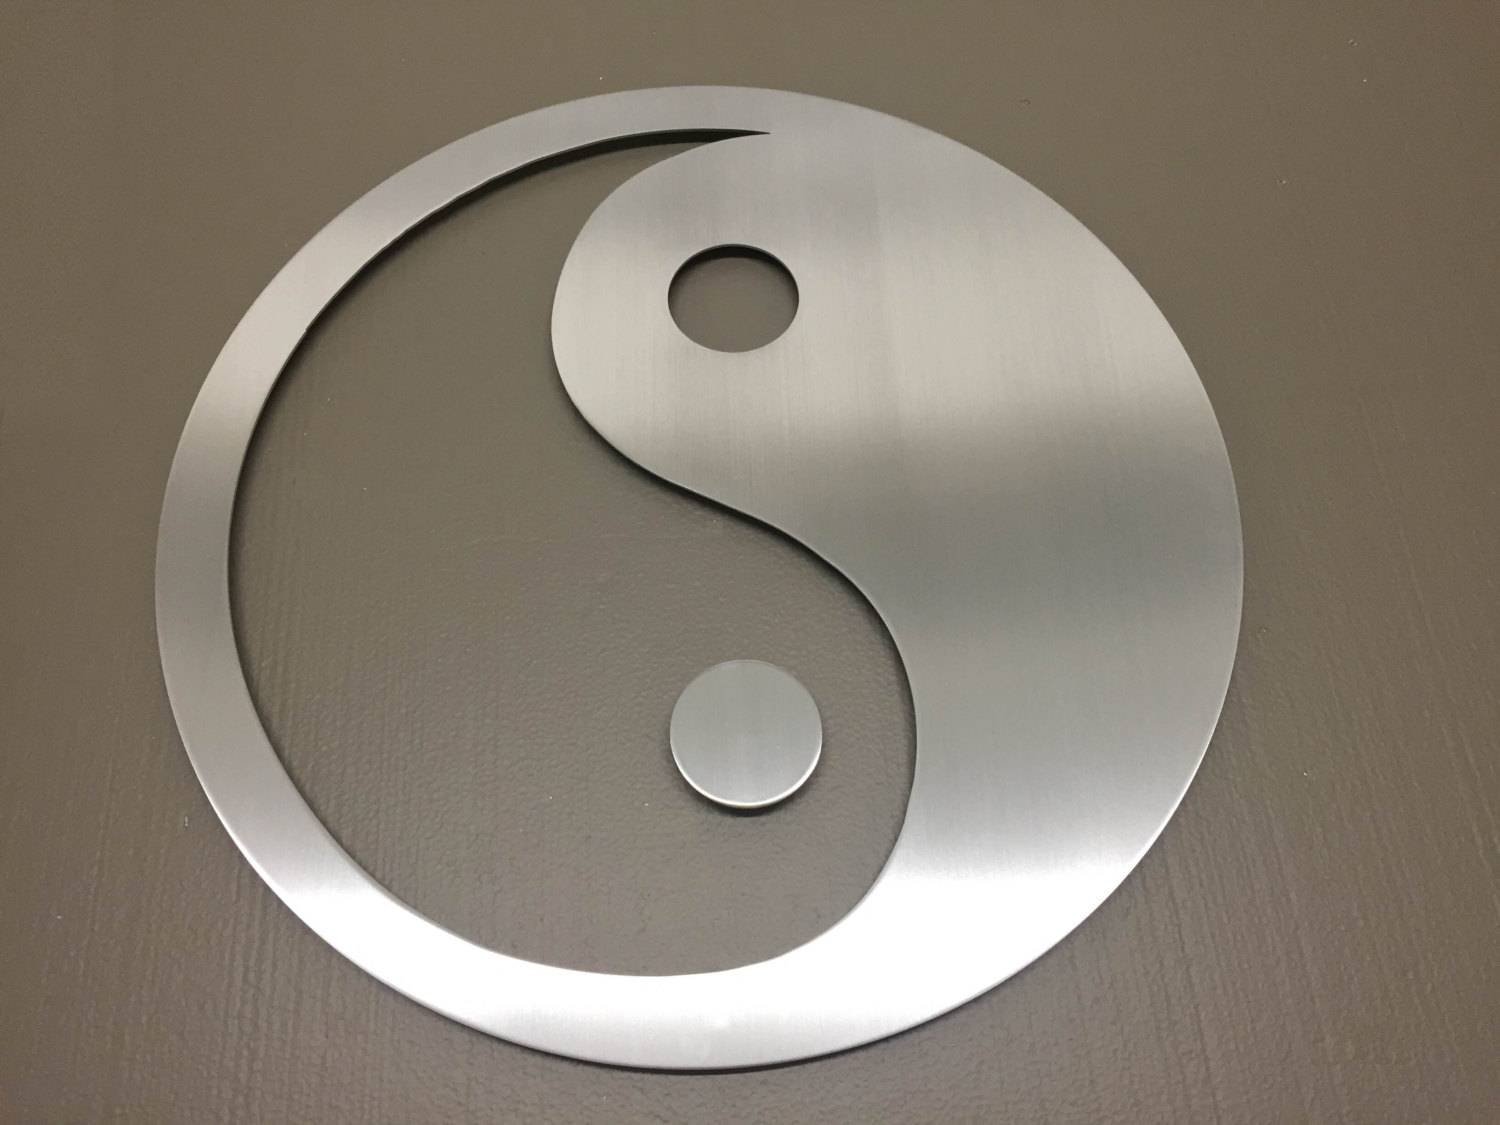 Yin Yang Metal Wall Art Wall Art Metal Wall Decor Metal Throughout Most Recently Released Yin Yang Wall Art (Gallery 17 of 30)